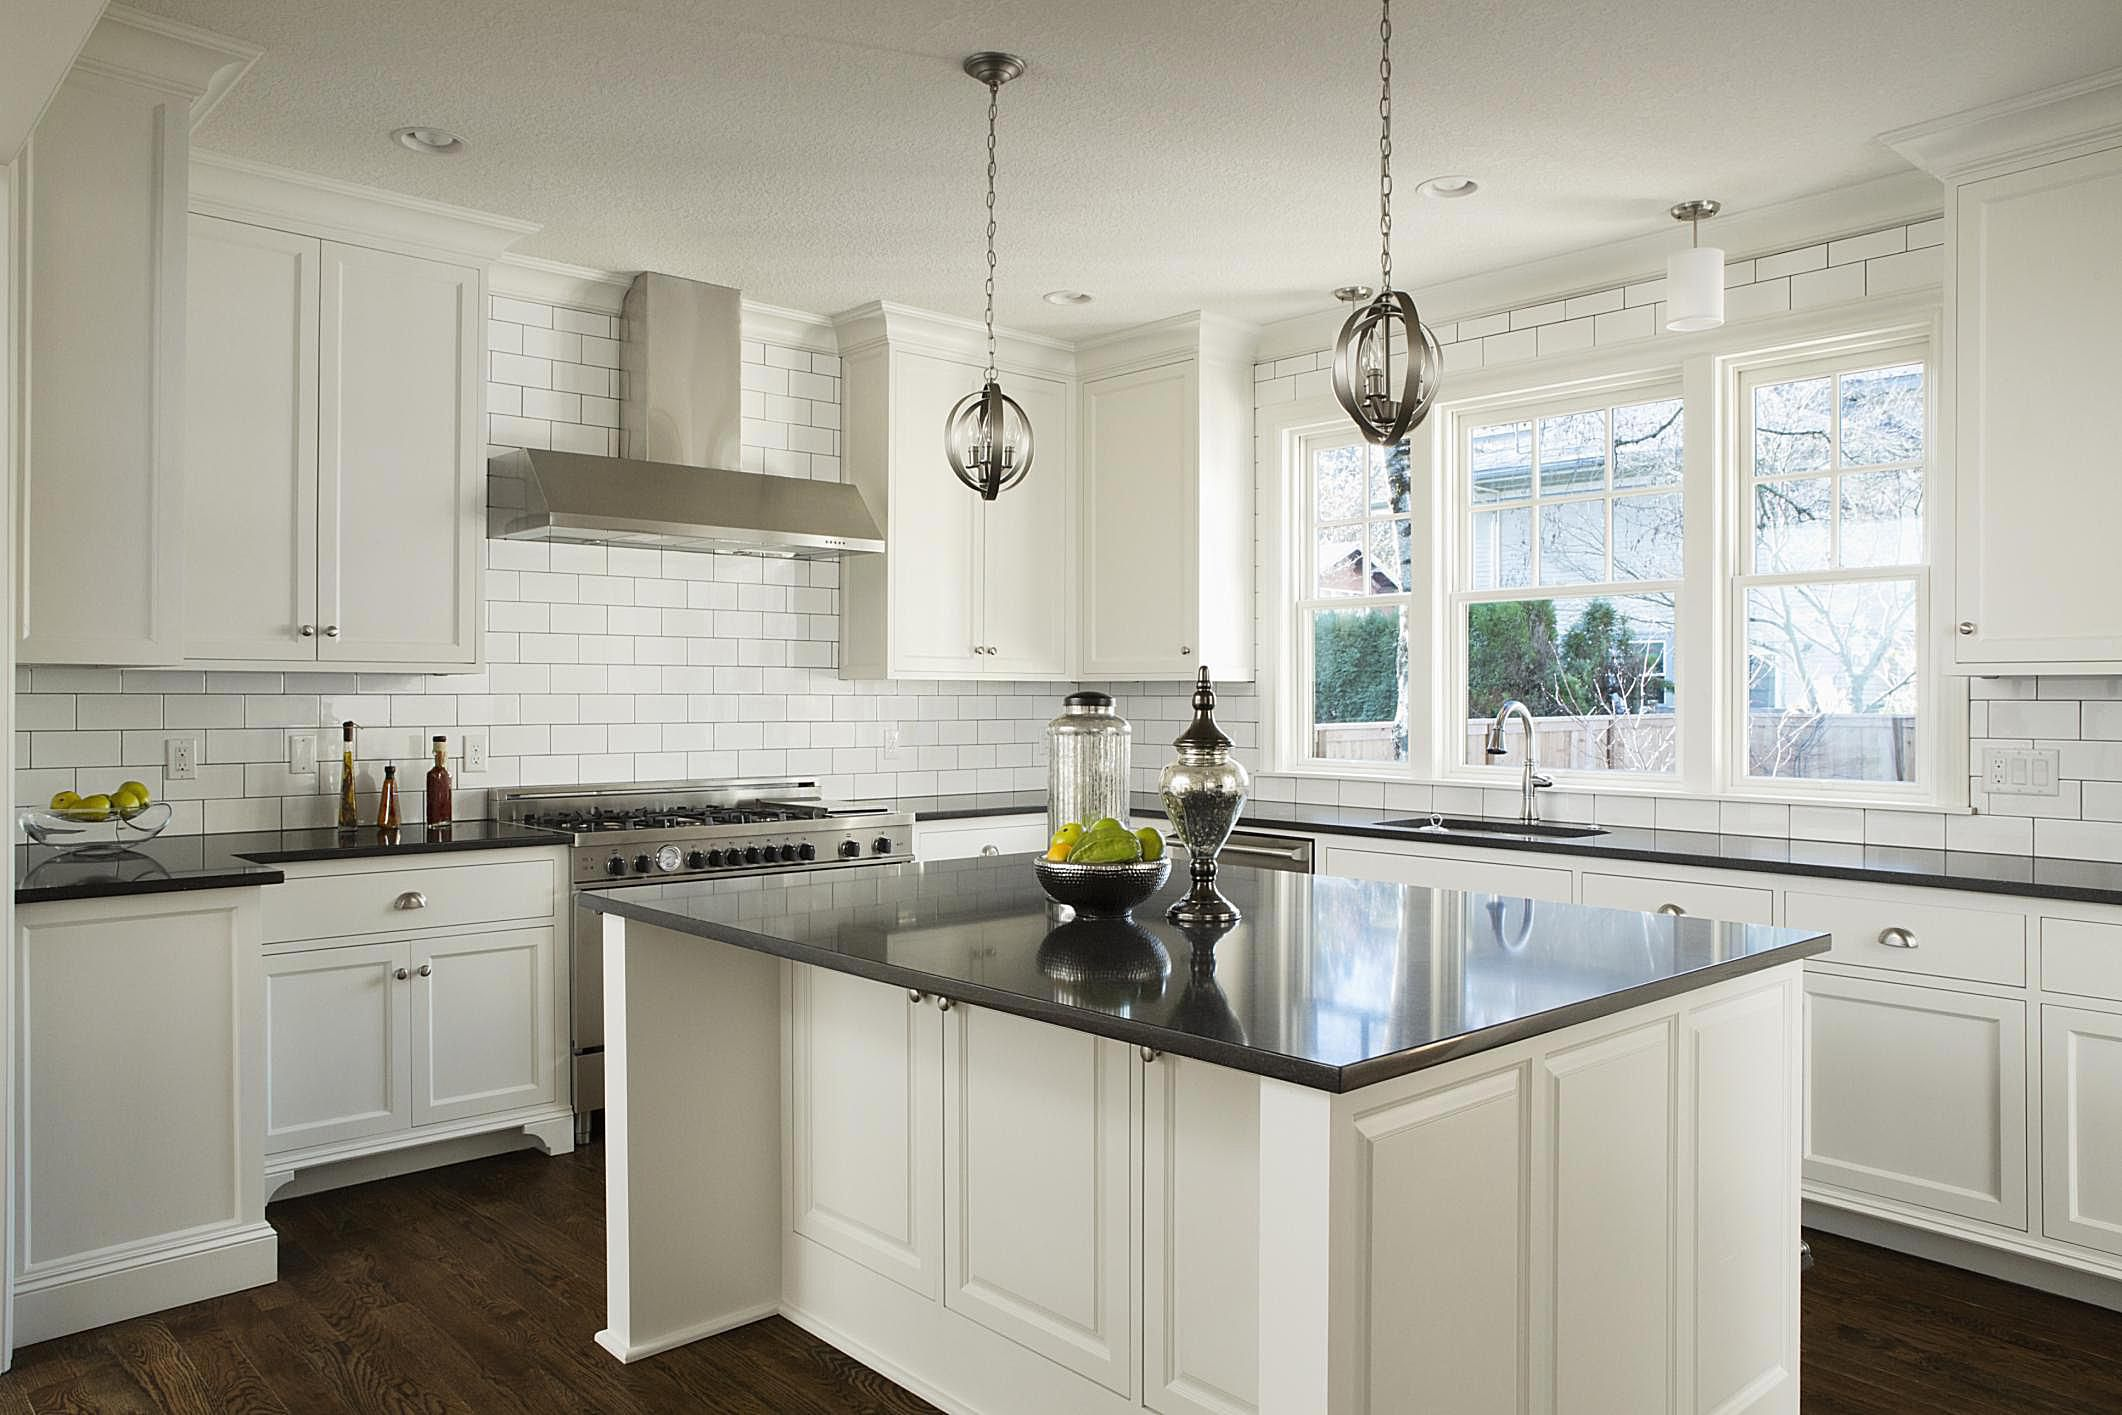 10 Sources For RTA (Ready-to-Assemble) Kitchen Cabinets